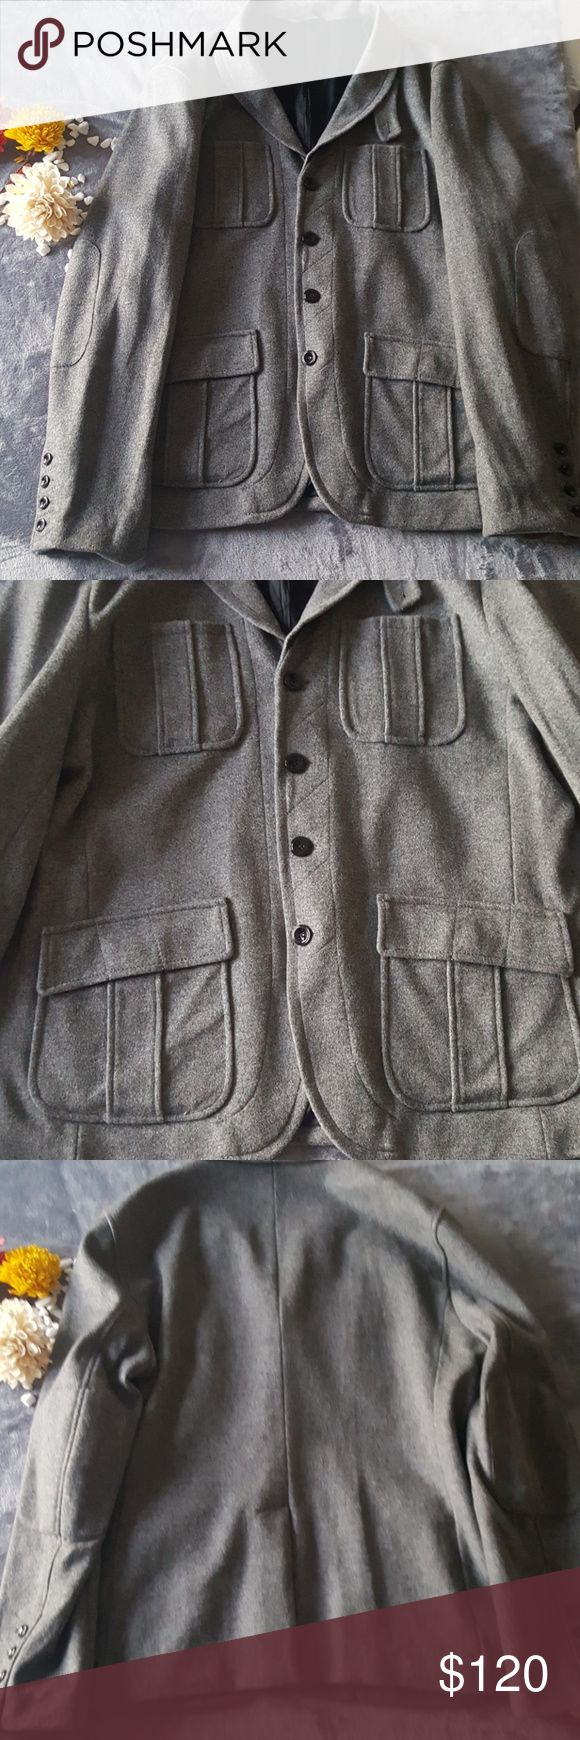 Authentic Armani Exchange This is clean and has already been washed and air dried with no stains or anything. . There is an inside pocket as shown in the 7th picture. The buttons do say armani exchange on them. It is pretty heavy and warming. Armani Exchange Jackets & Coats Pea Coats